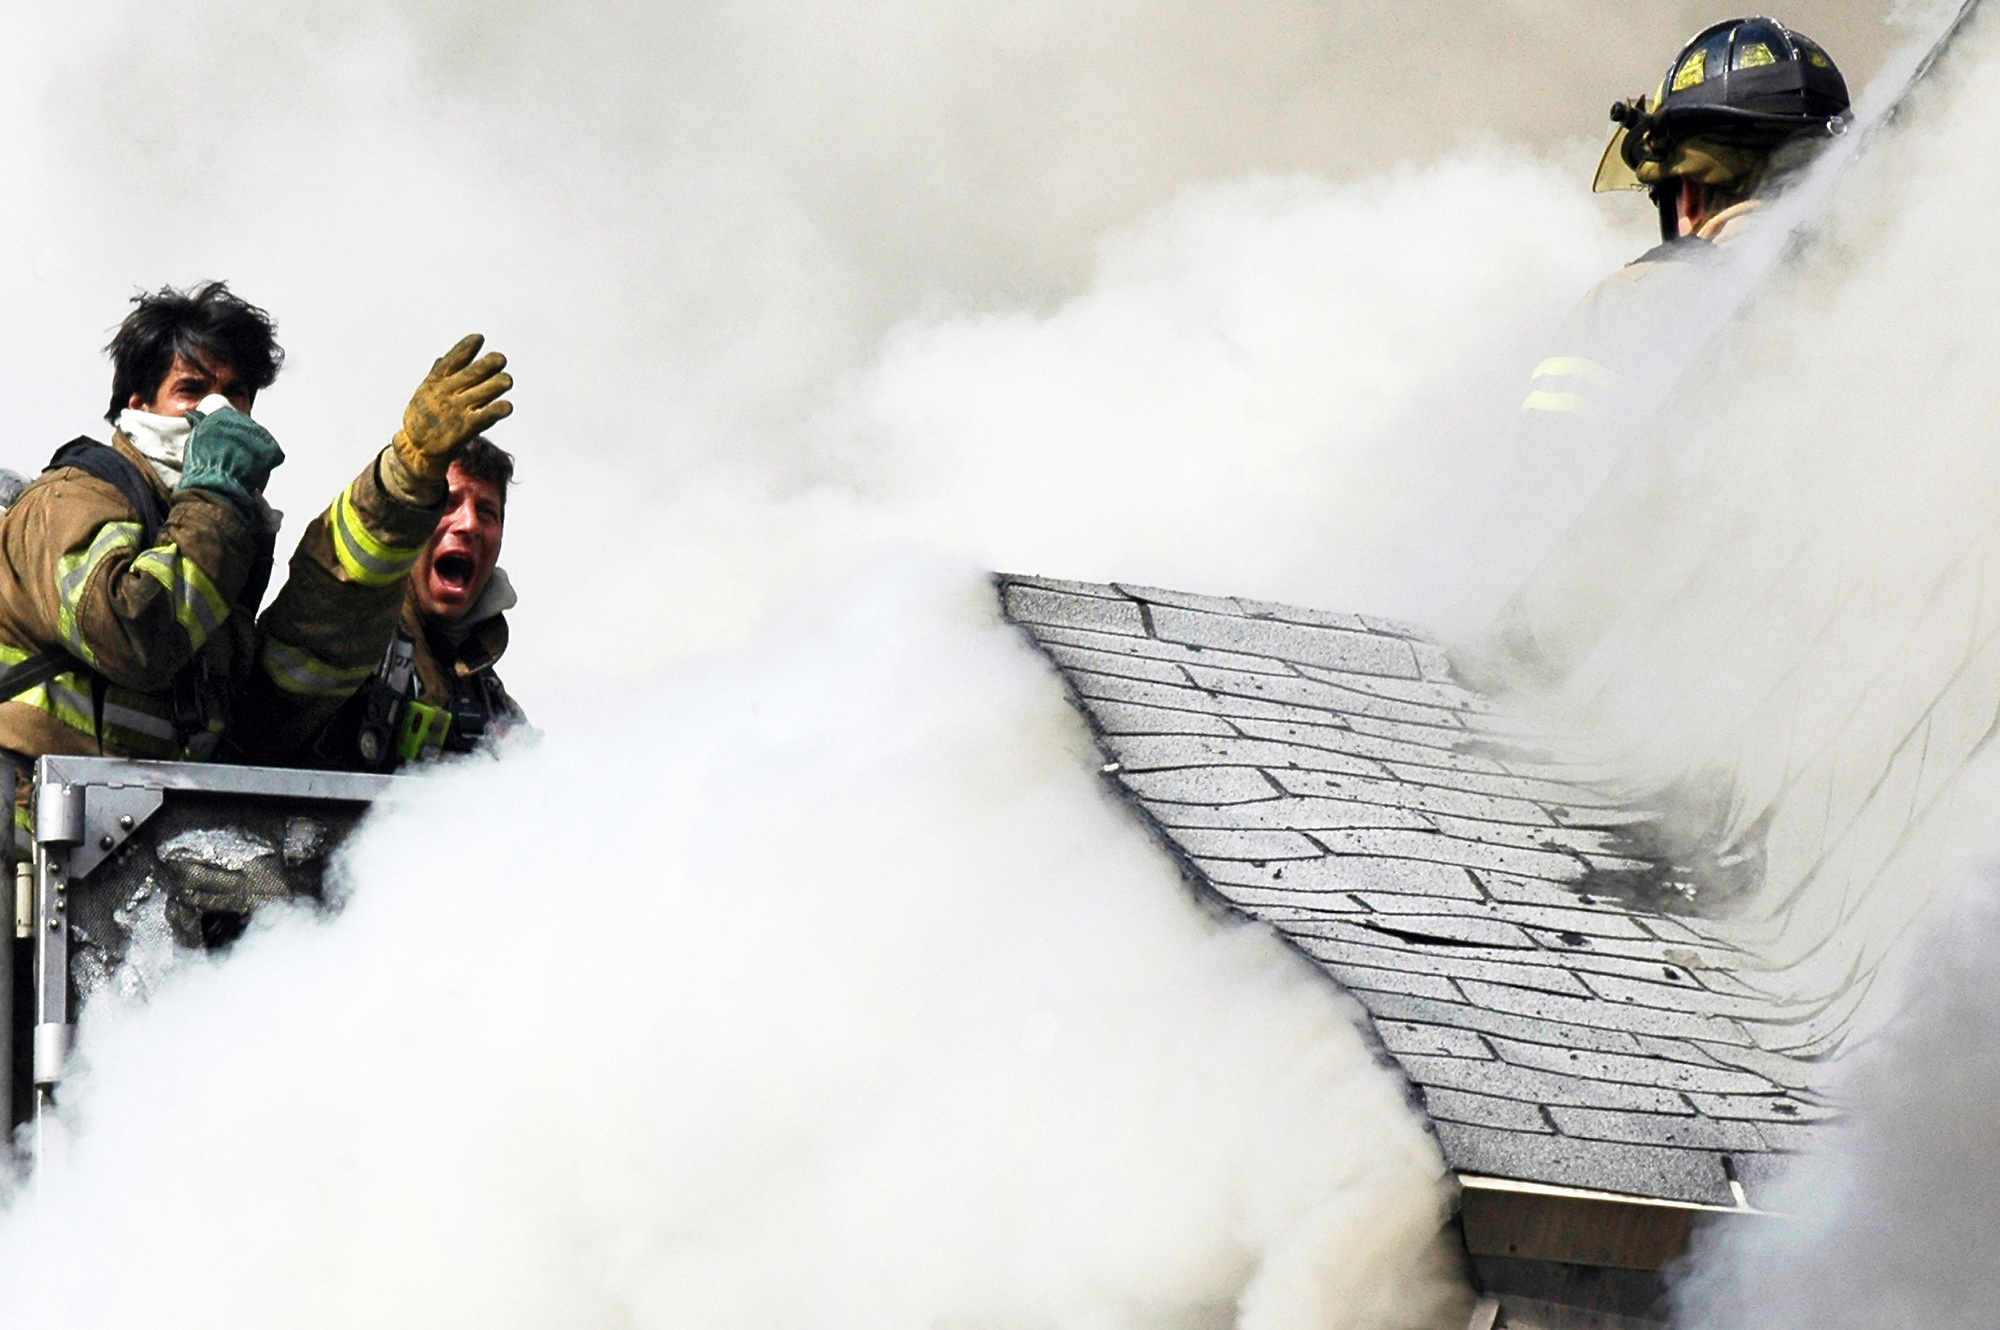 Firefighters reach out to others trapped on the roof of a house on Randolph Avenue while battling a three-alarm fire. The firefighters on the roof were rescued by those on the tower ladder. Four homes were damaged and four people were injured including three firefighters. (Reena Rose Sibayan | The Jersey Journal)